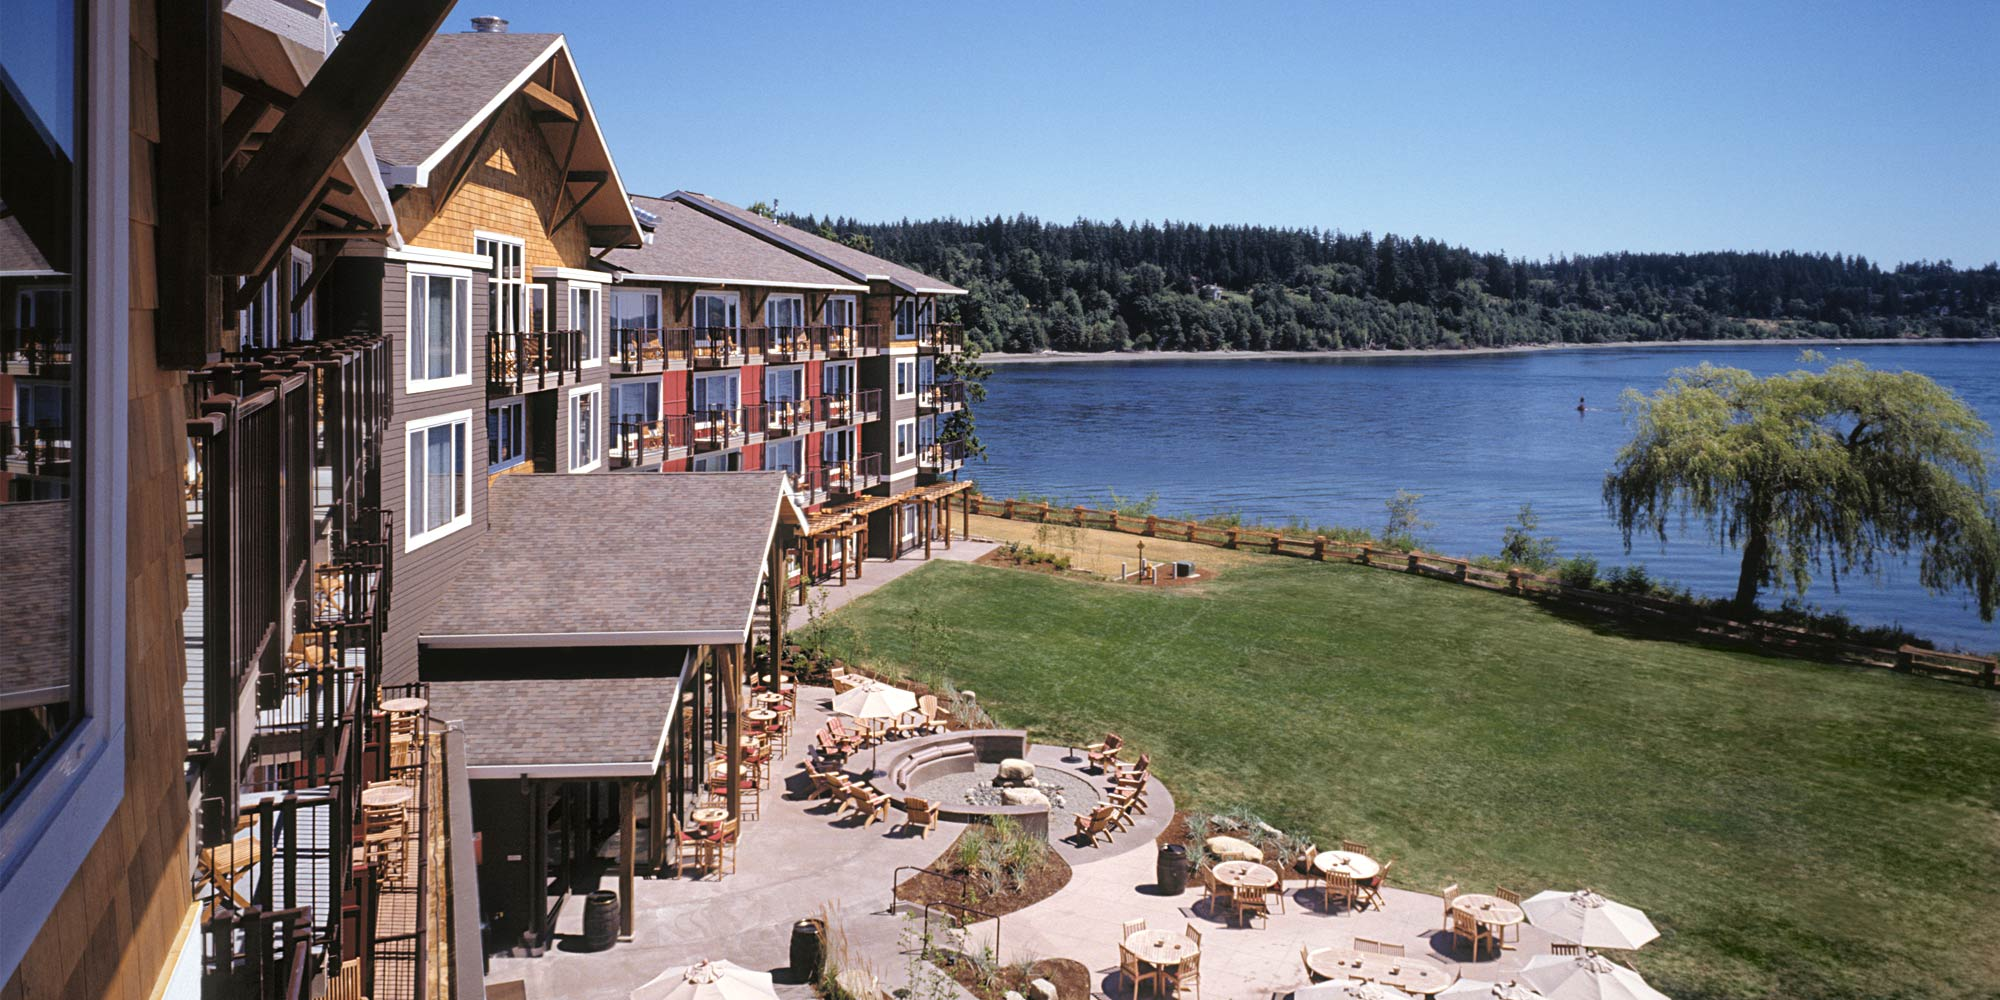 Waterfront view at Suquamish Clearwater Resort